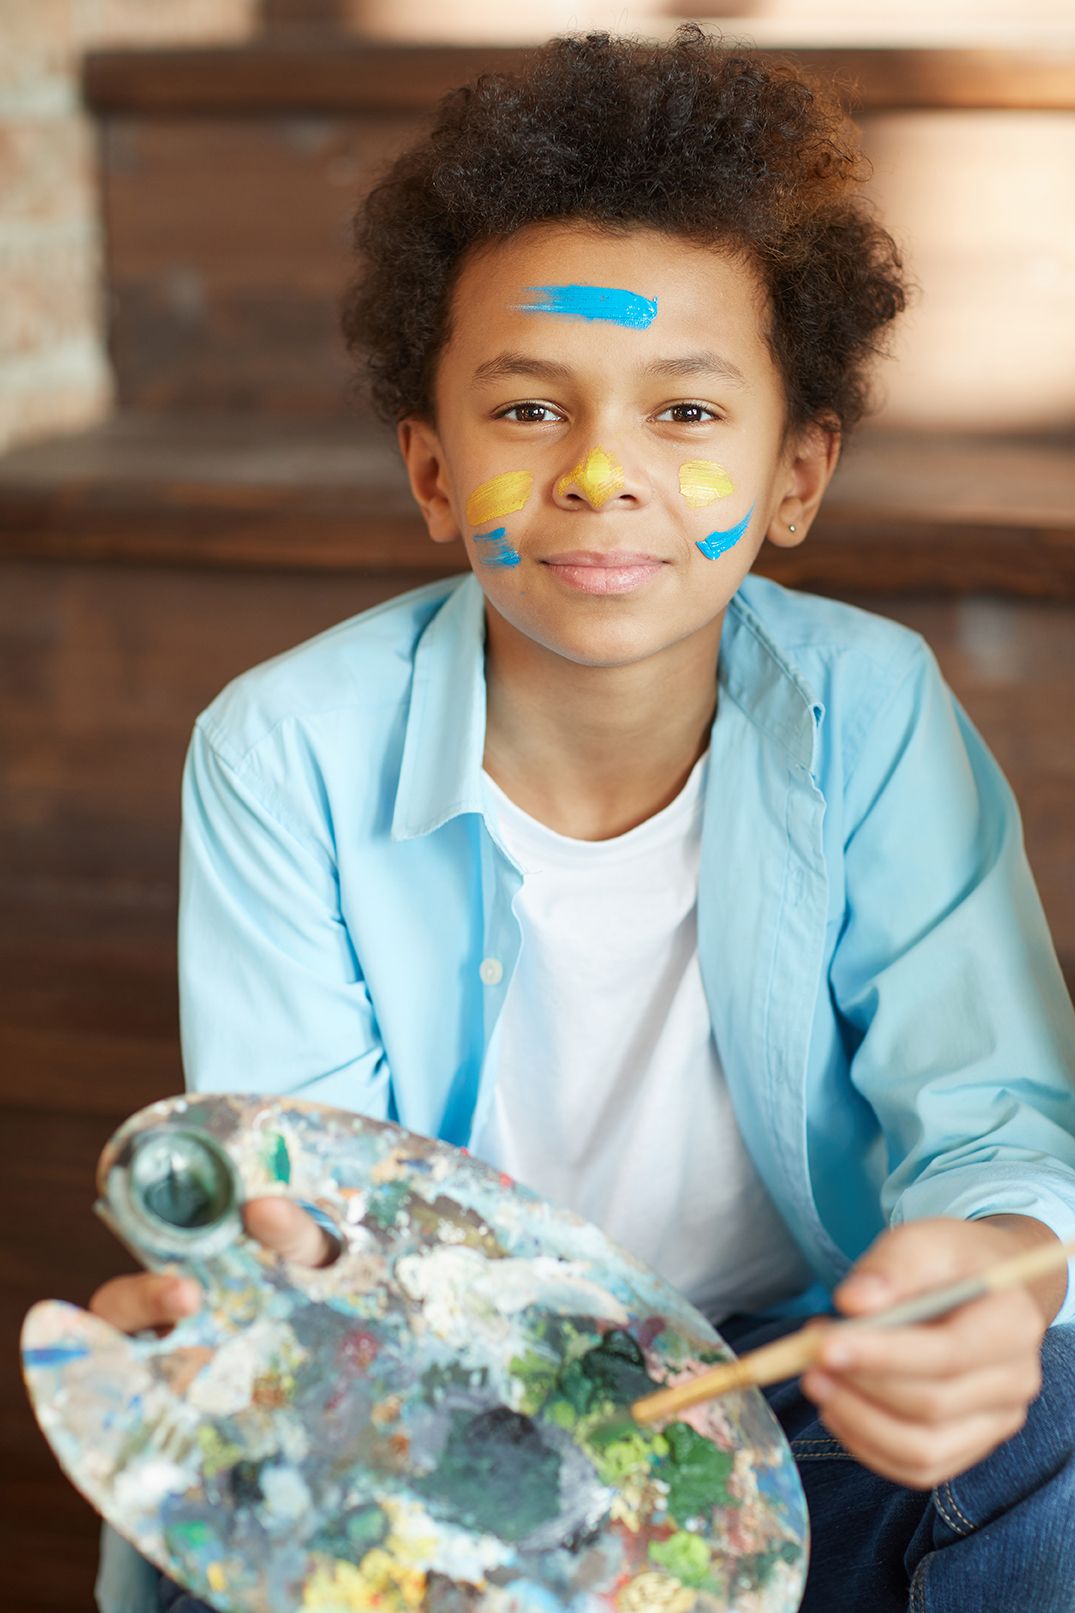 a handsome kids smiling with paint on his forehead holding a palette with paint.